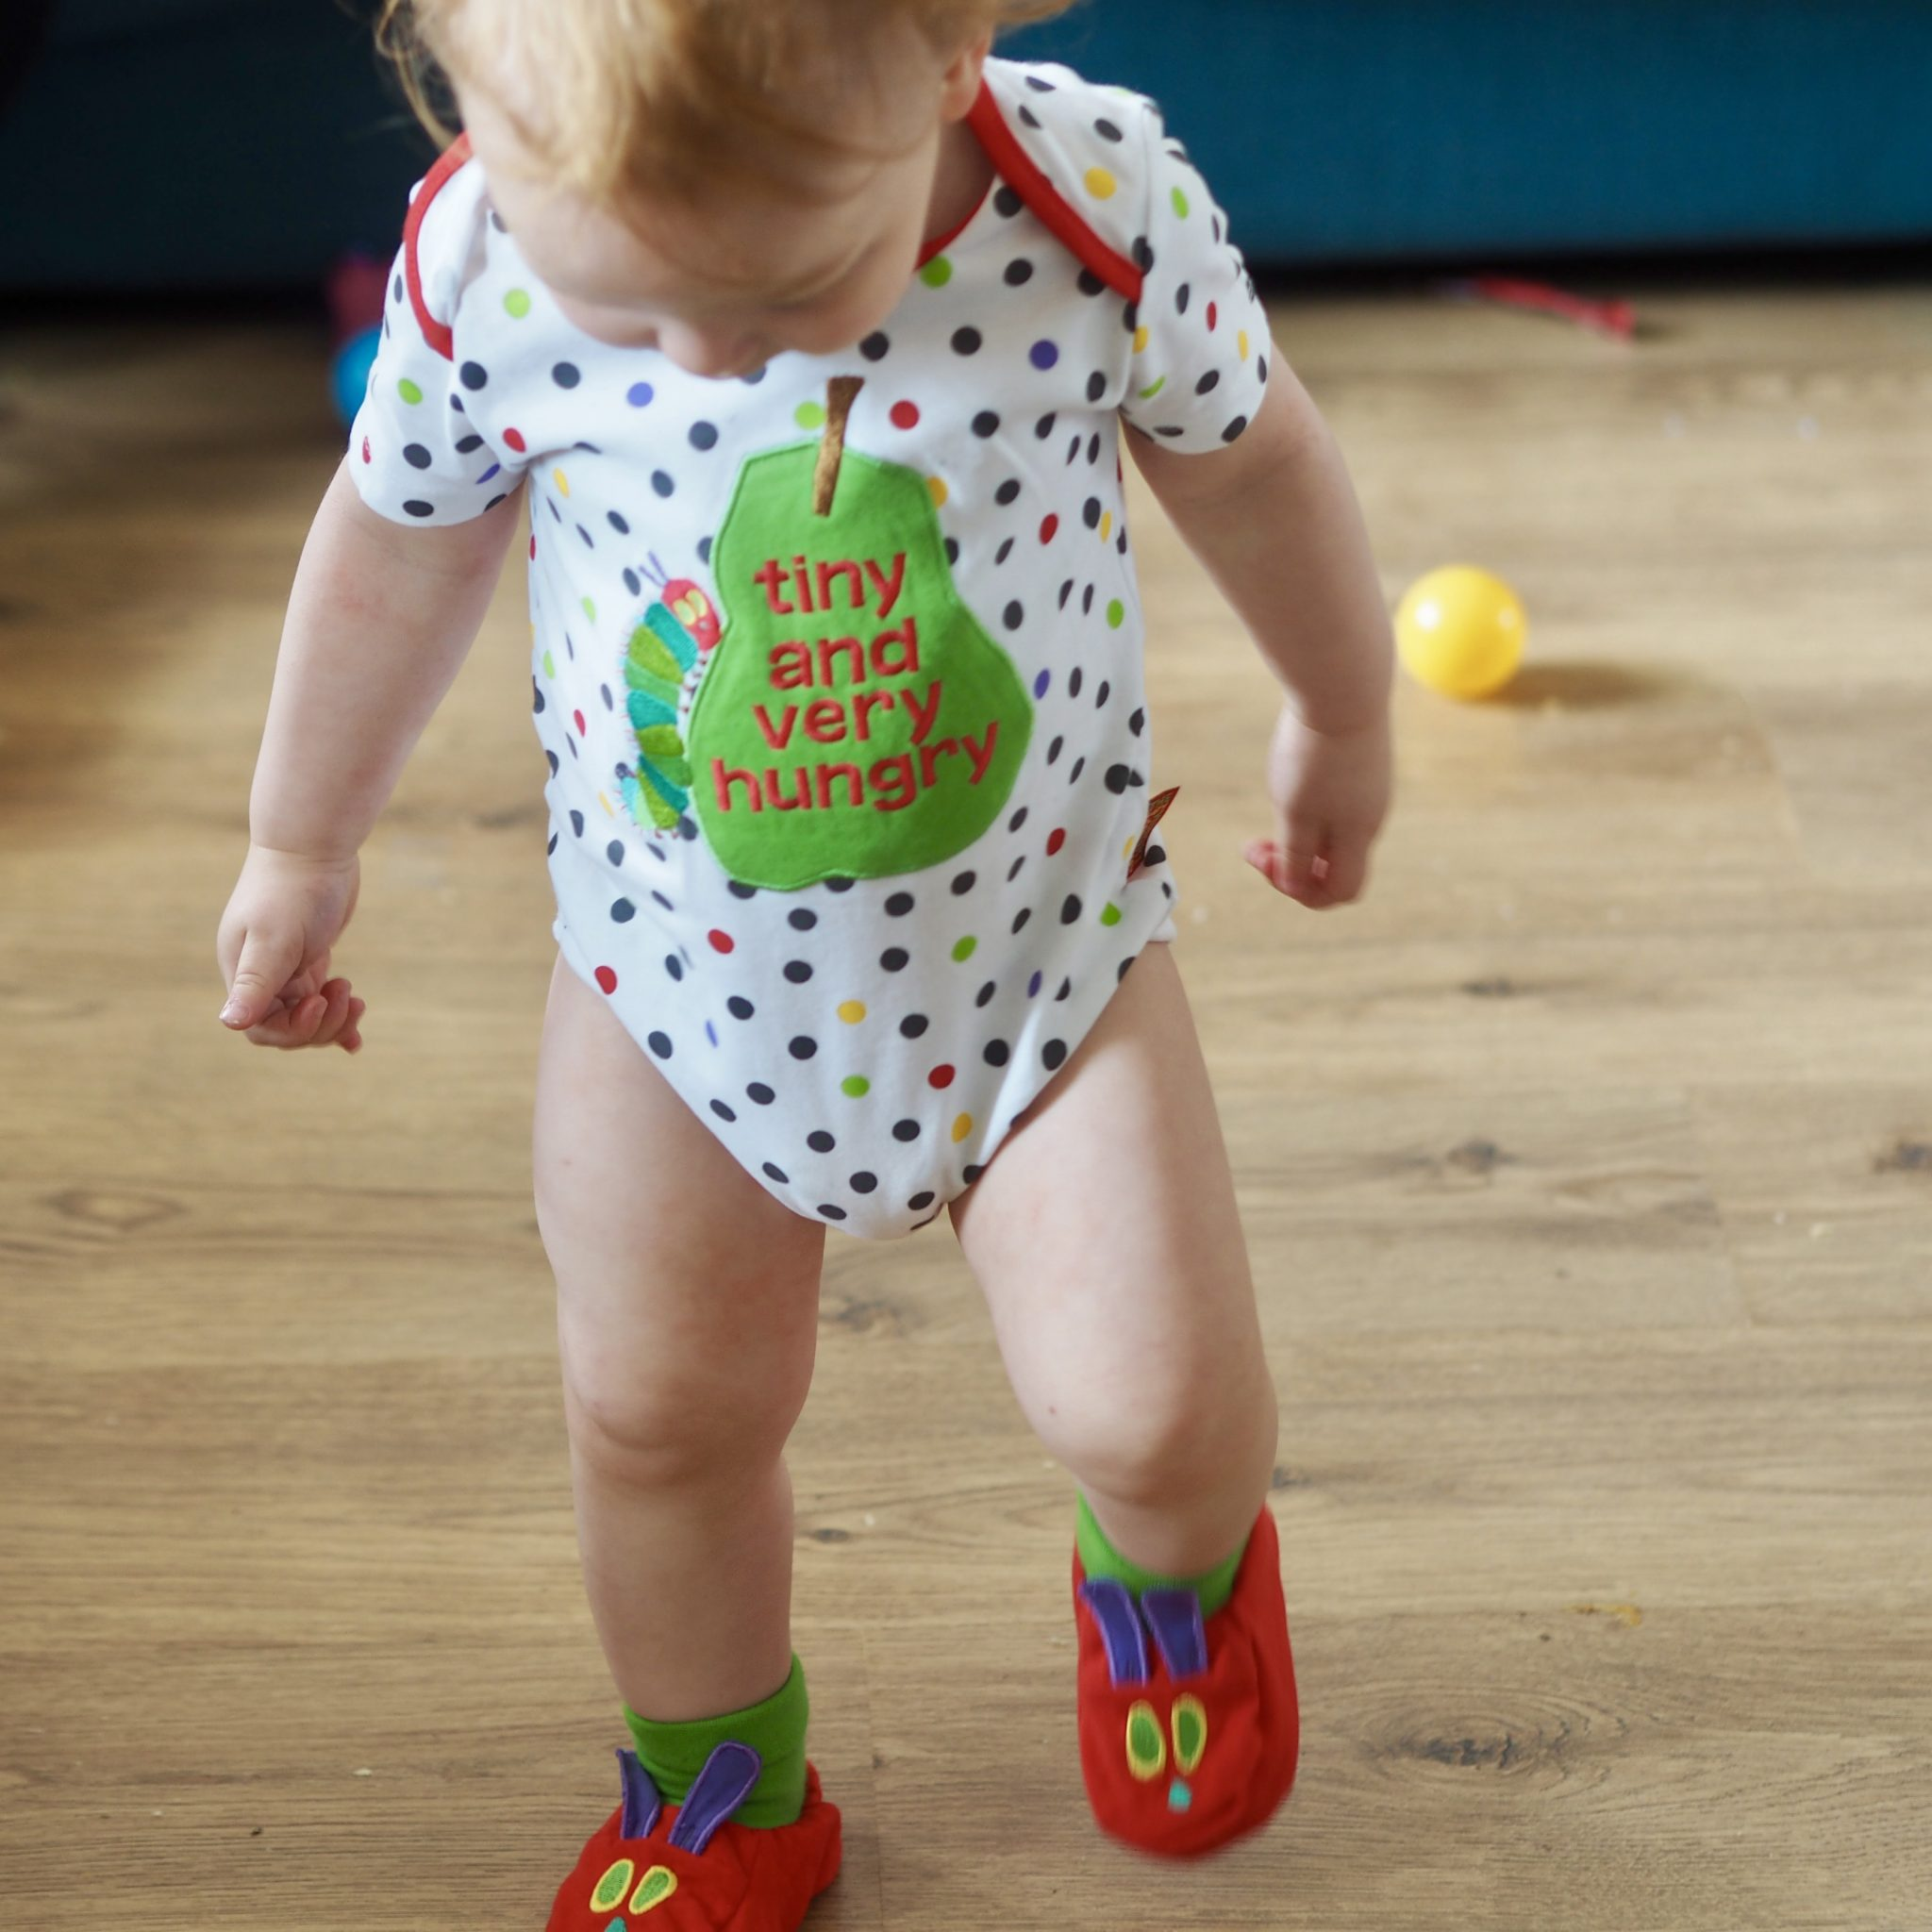 The Very Hungry Caterpillar BabyWear Range - pretty Big Butterflies